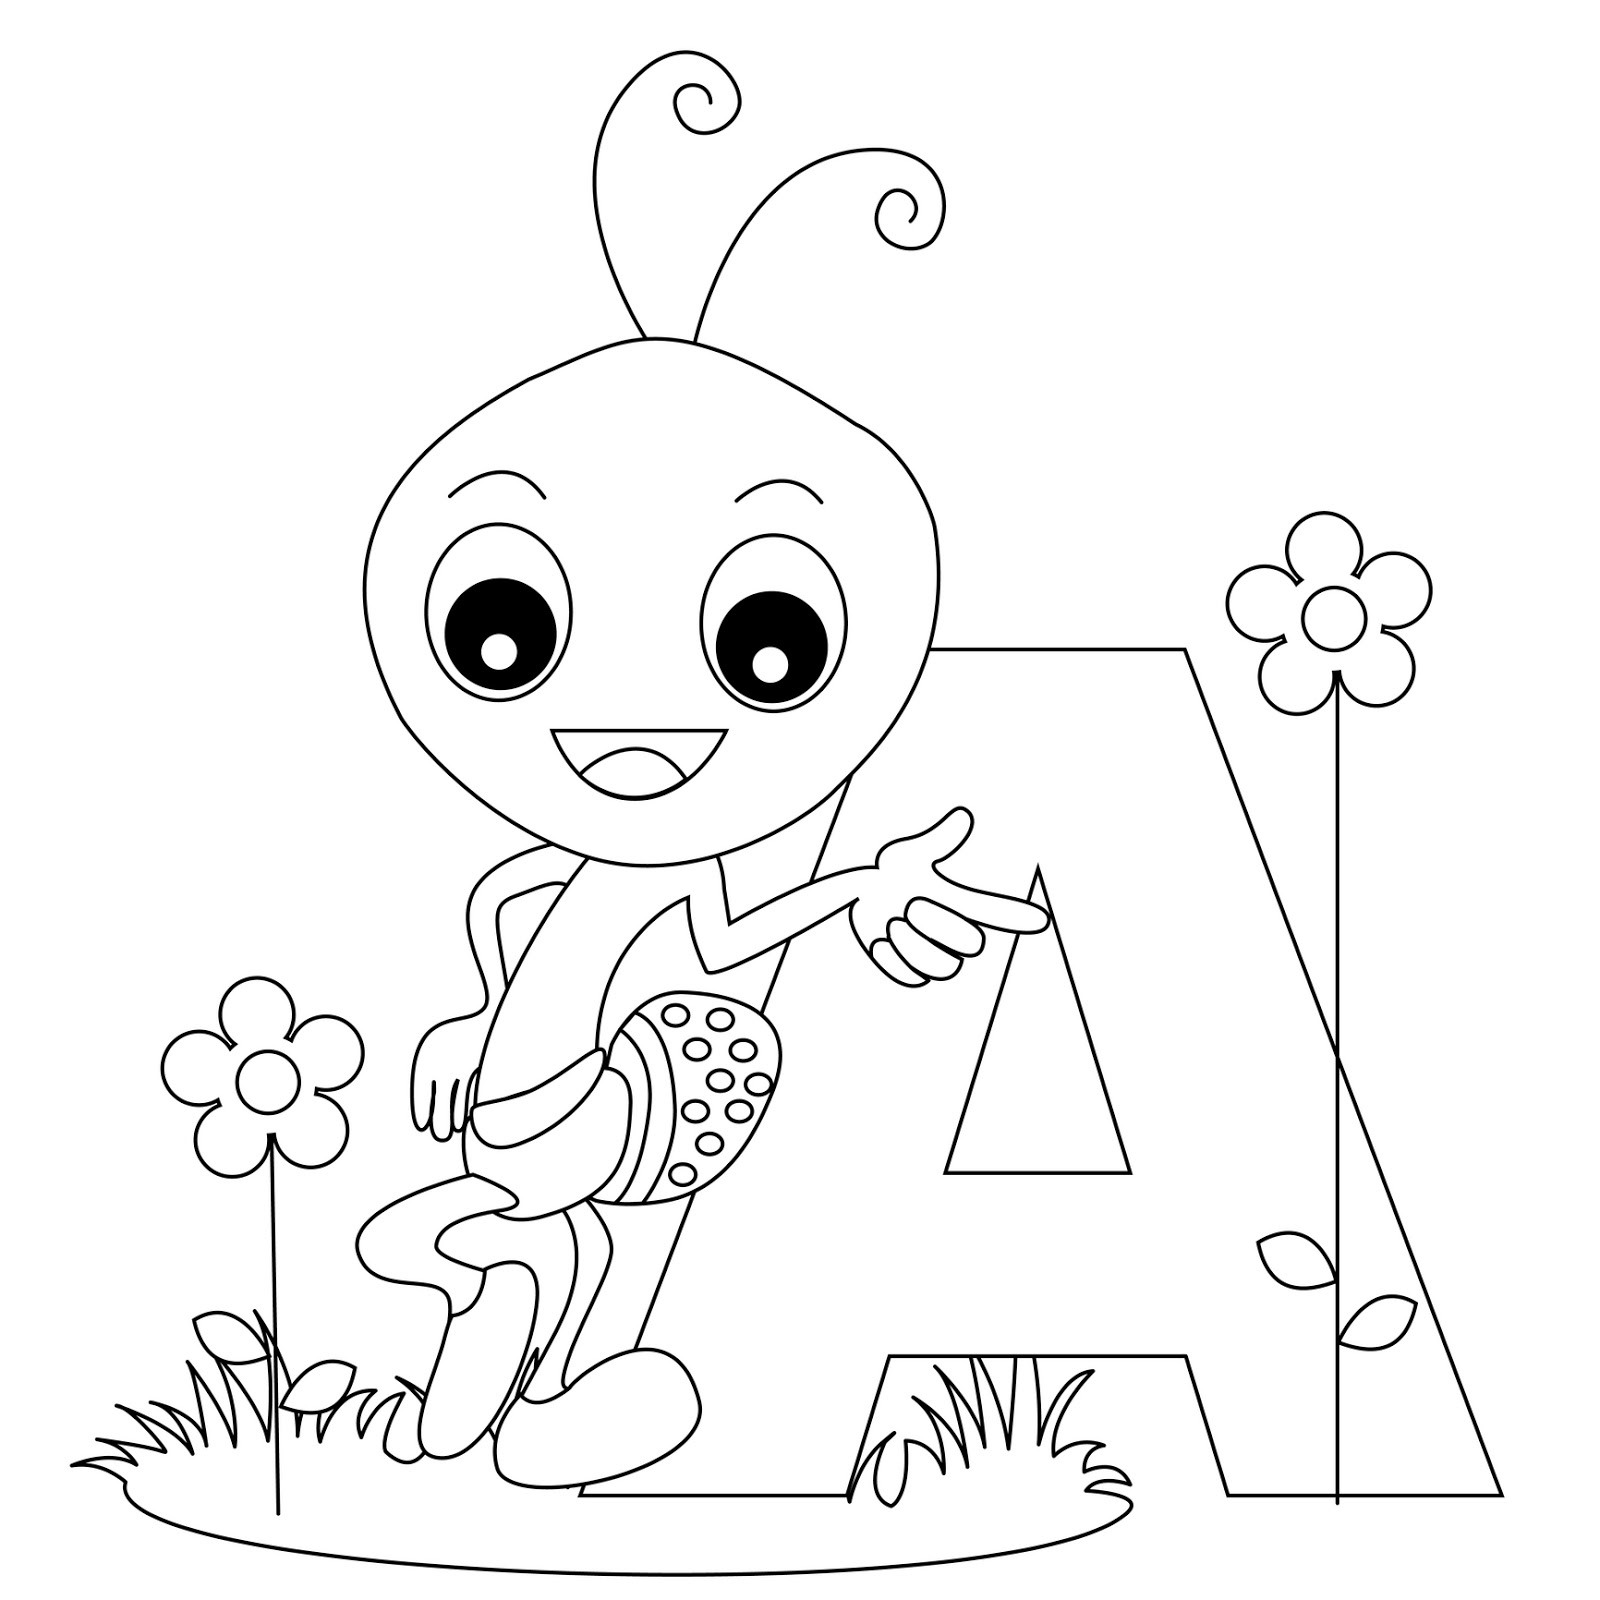 Letter S Coloring Pages Preschool At Getdrawings Com Free For